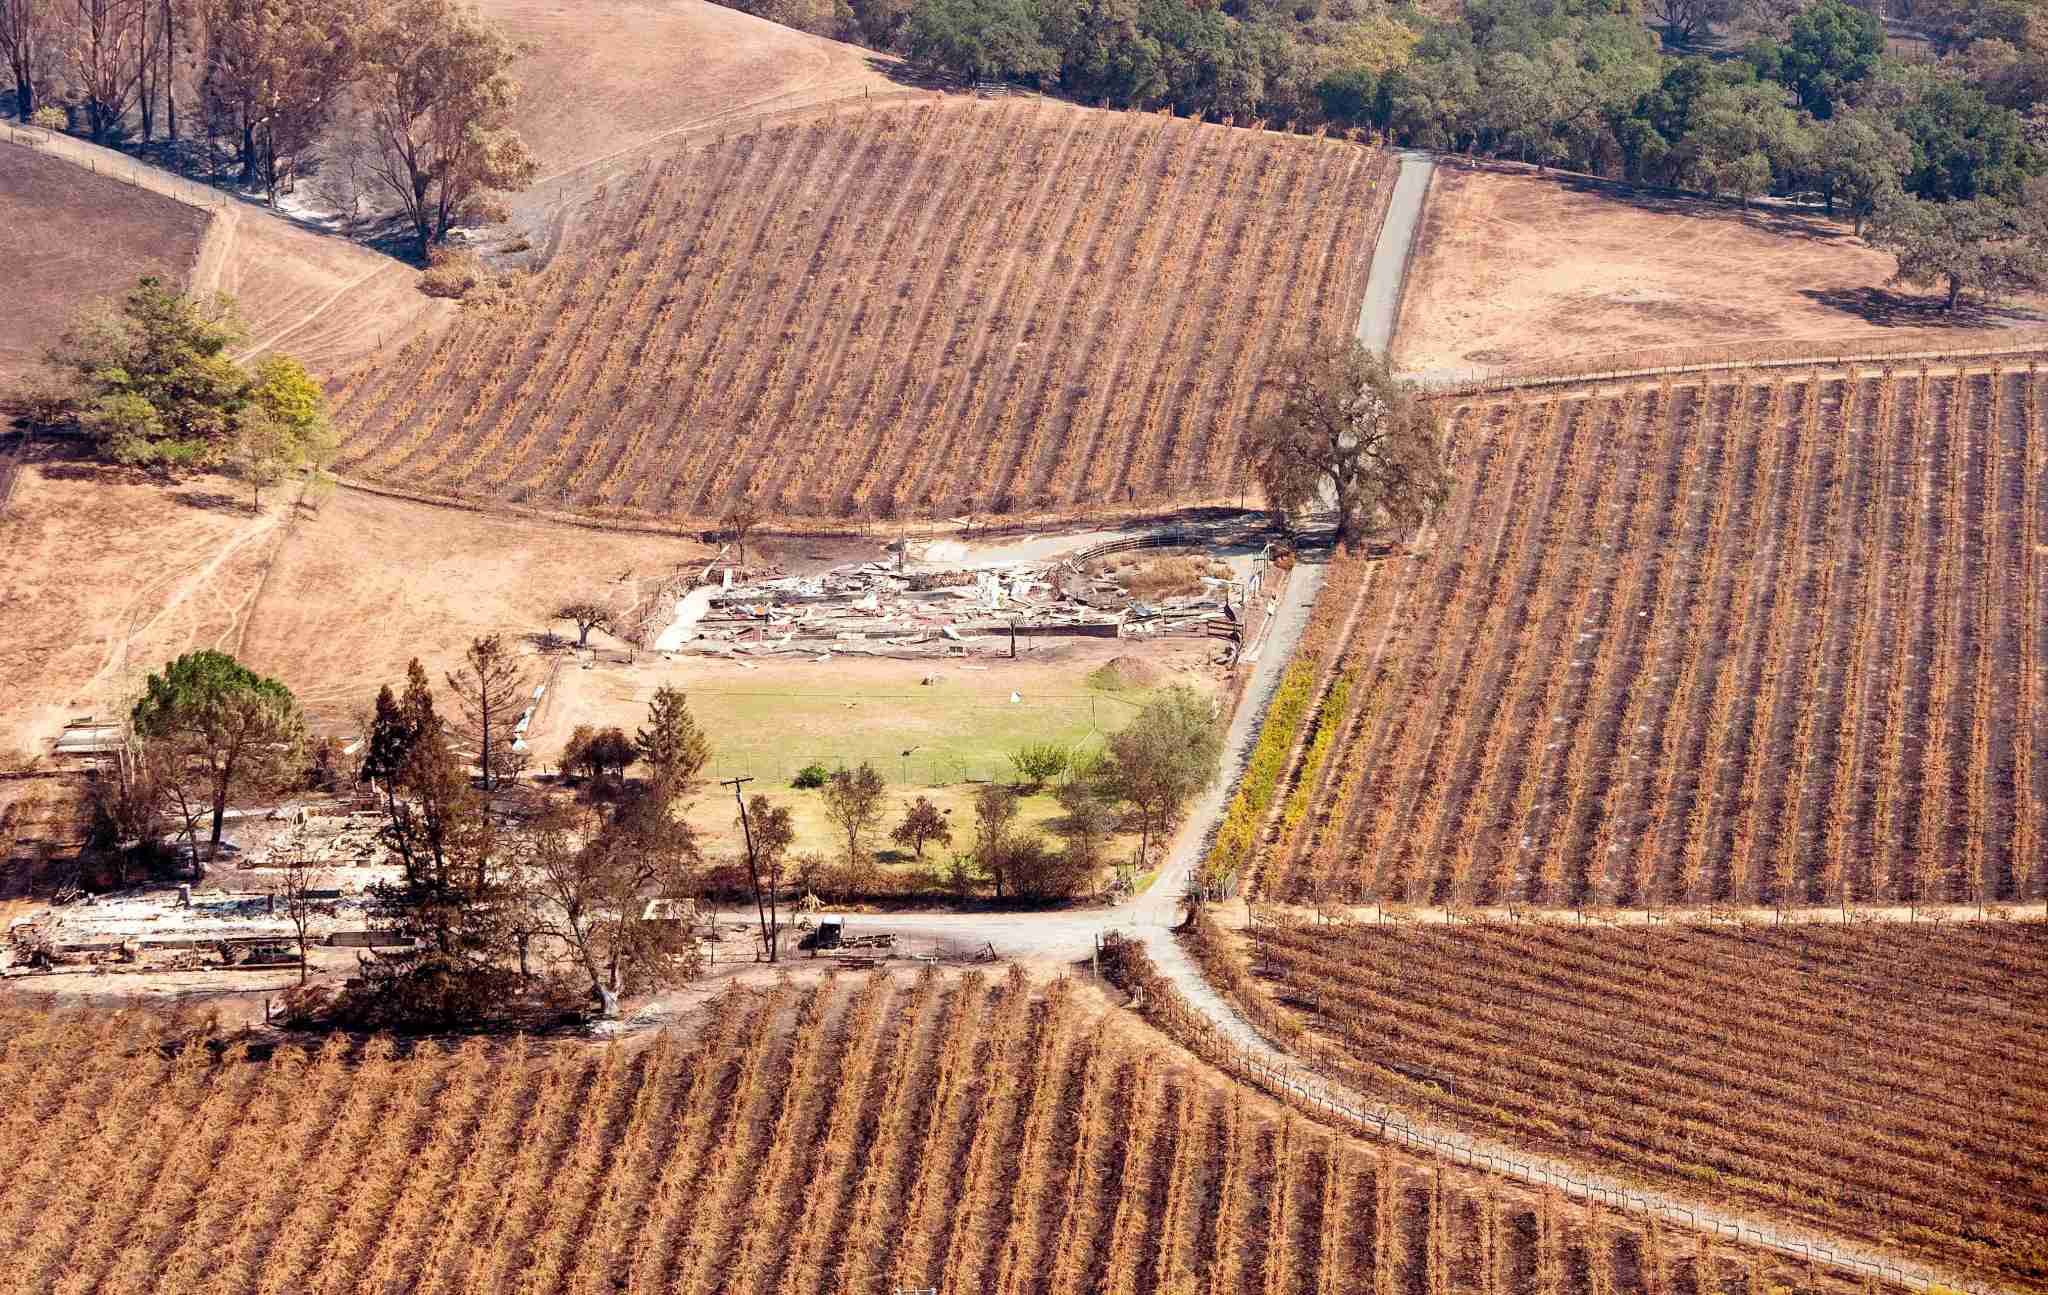 An aerial view shows a burned property surrounded by charred vineyards in Santa Rosa, California on October 12, 2017. Photo by Josh Edelson / AFP / Getty Images)